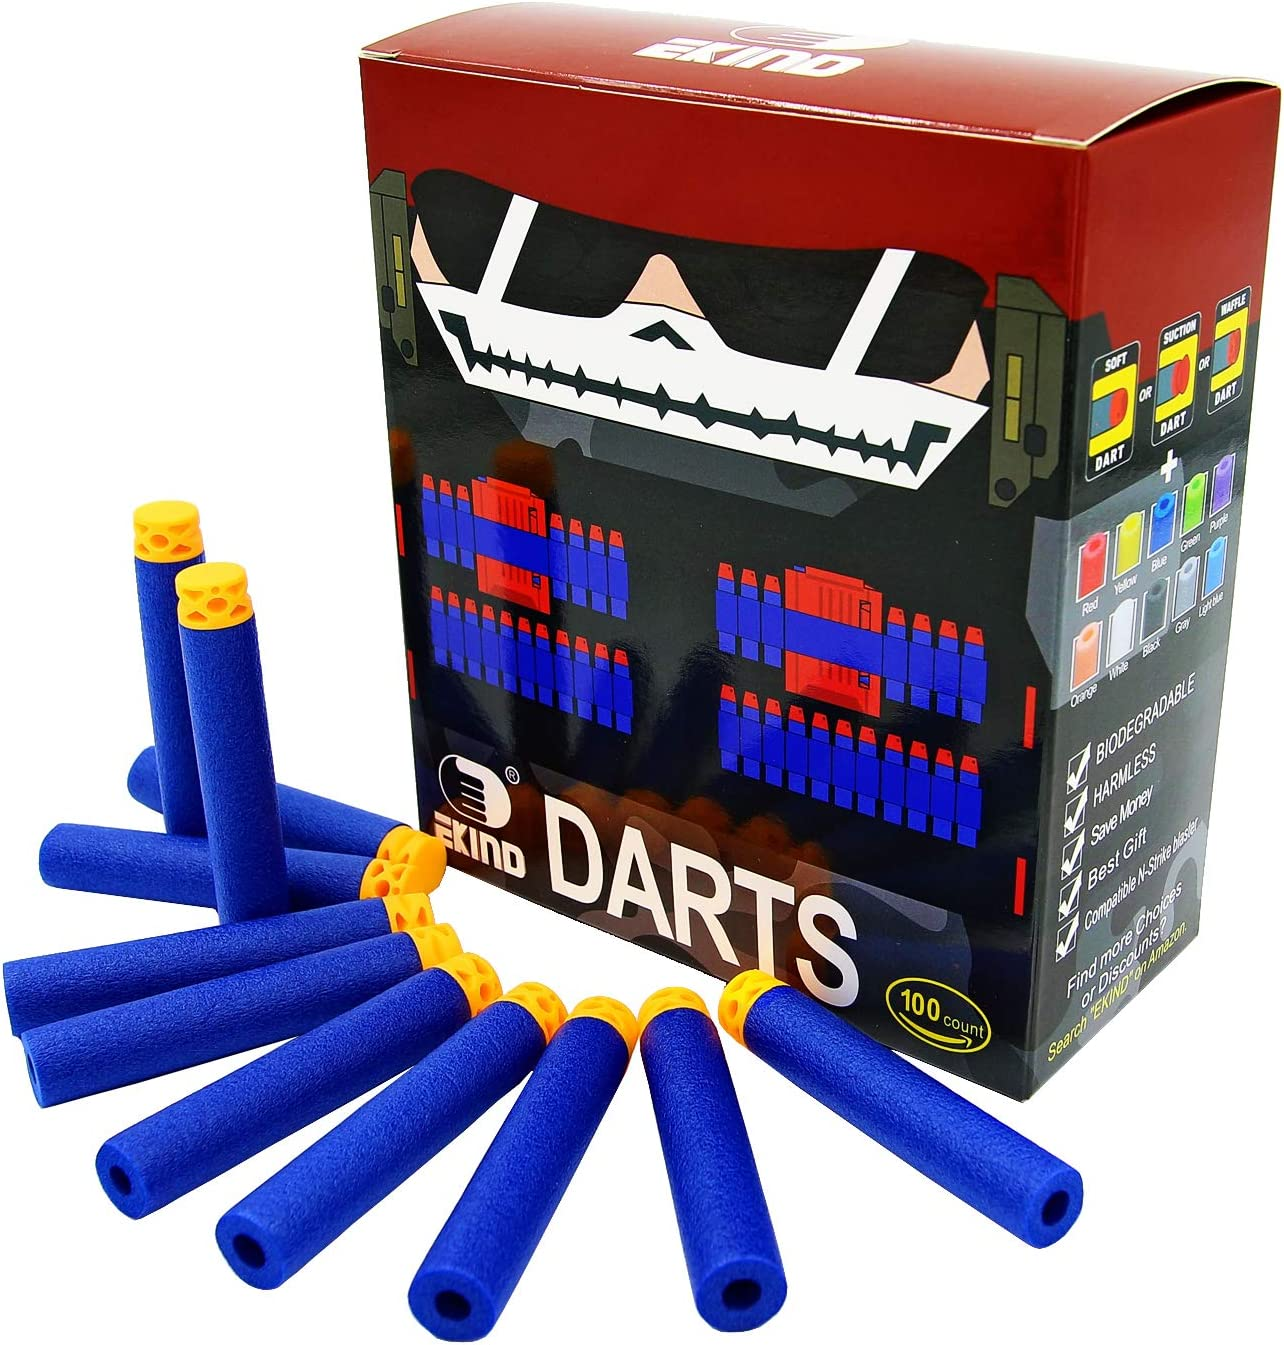 Waffle Tipped Darts For Nerf Guns Brand New!